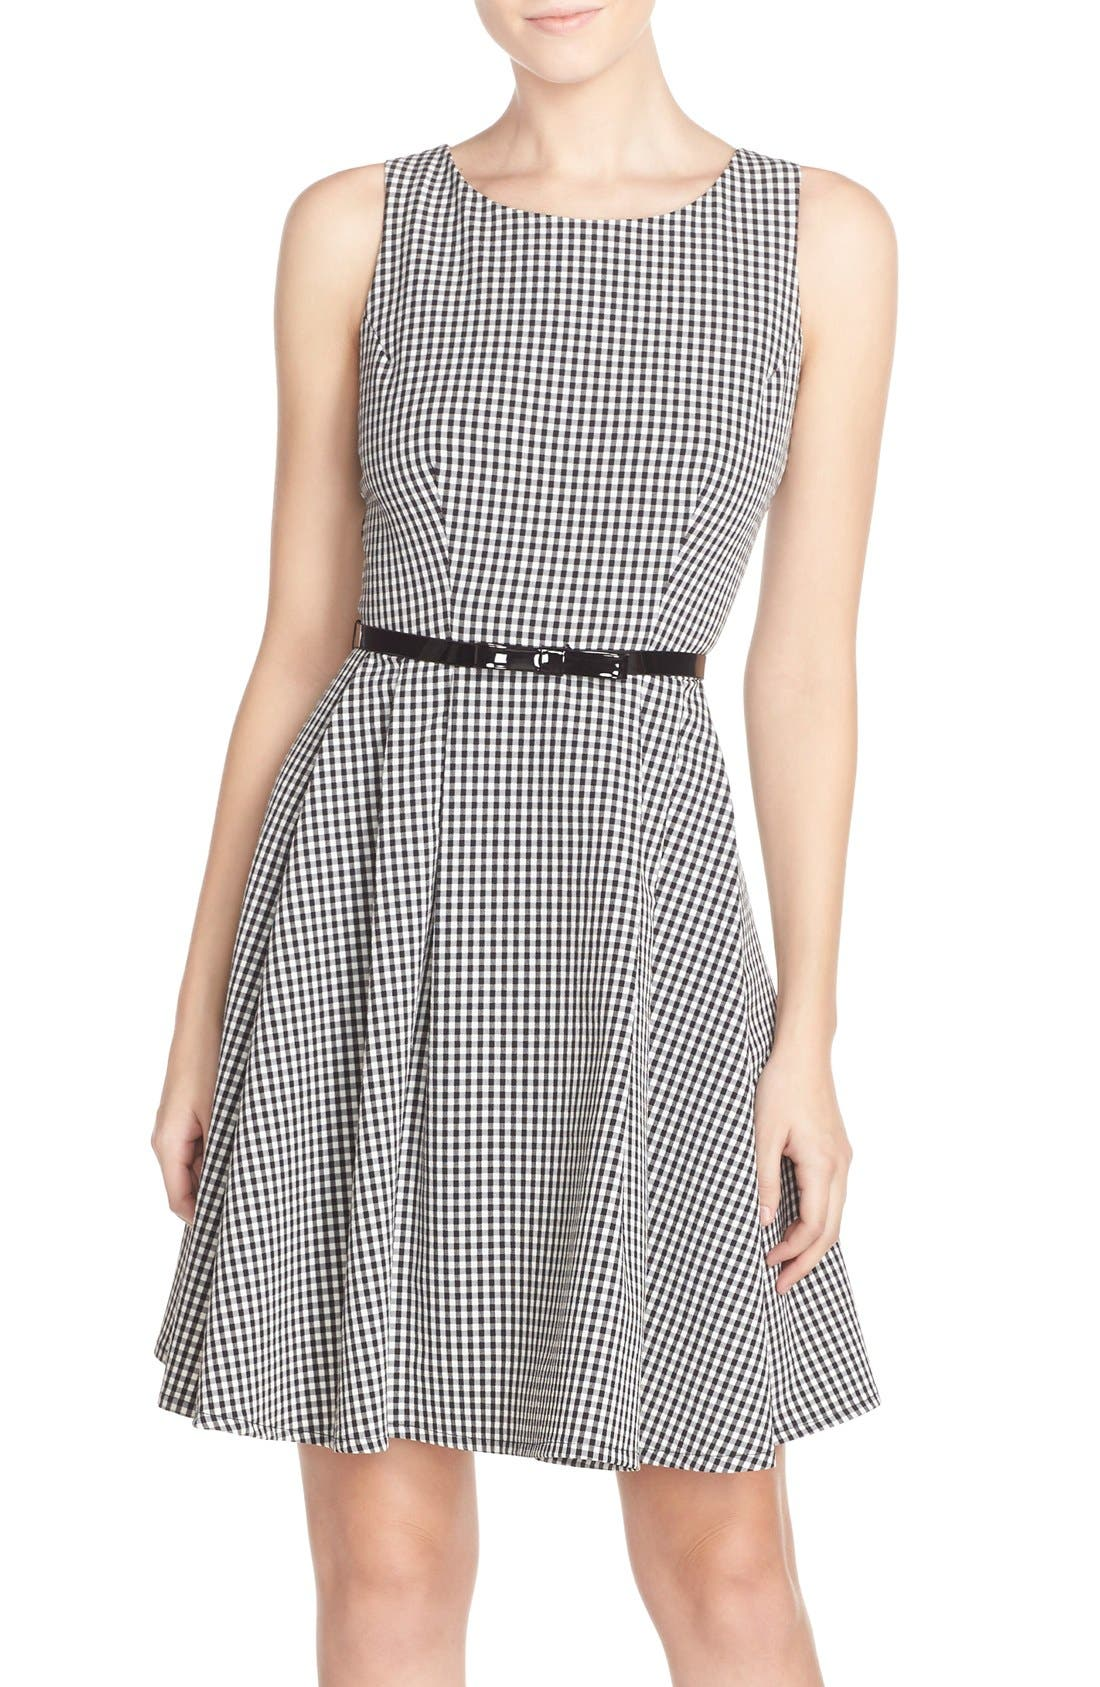 Main Image - Gabby Skye Gingham Fit & Flare Dress